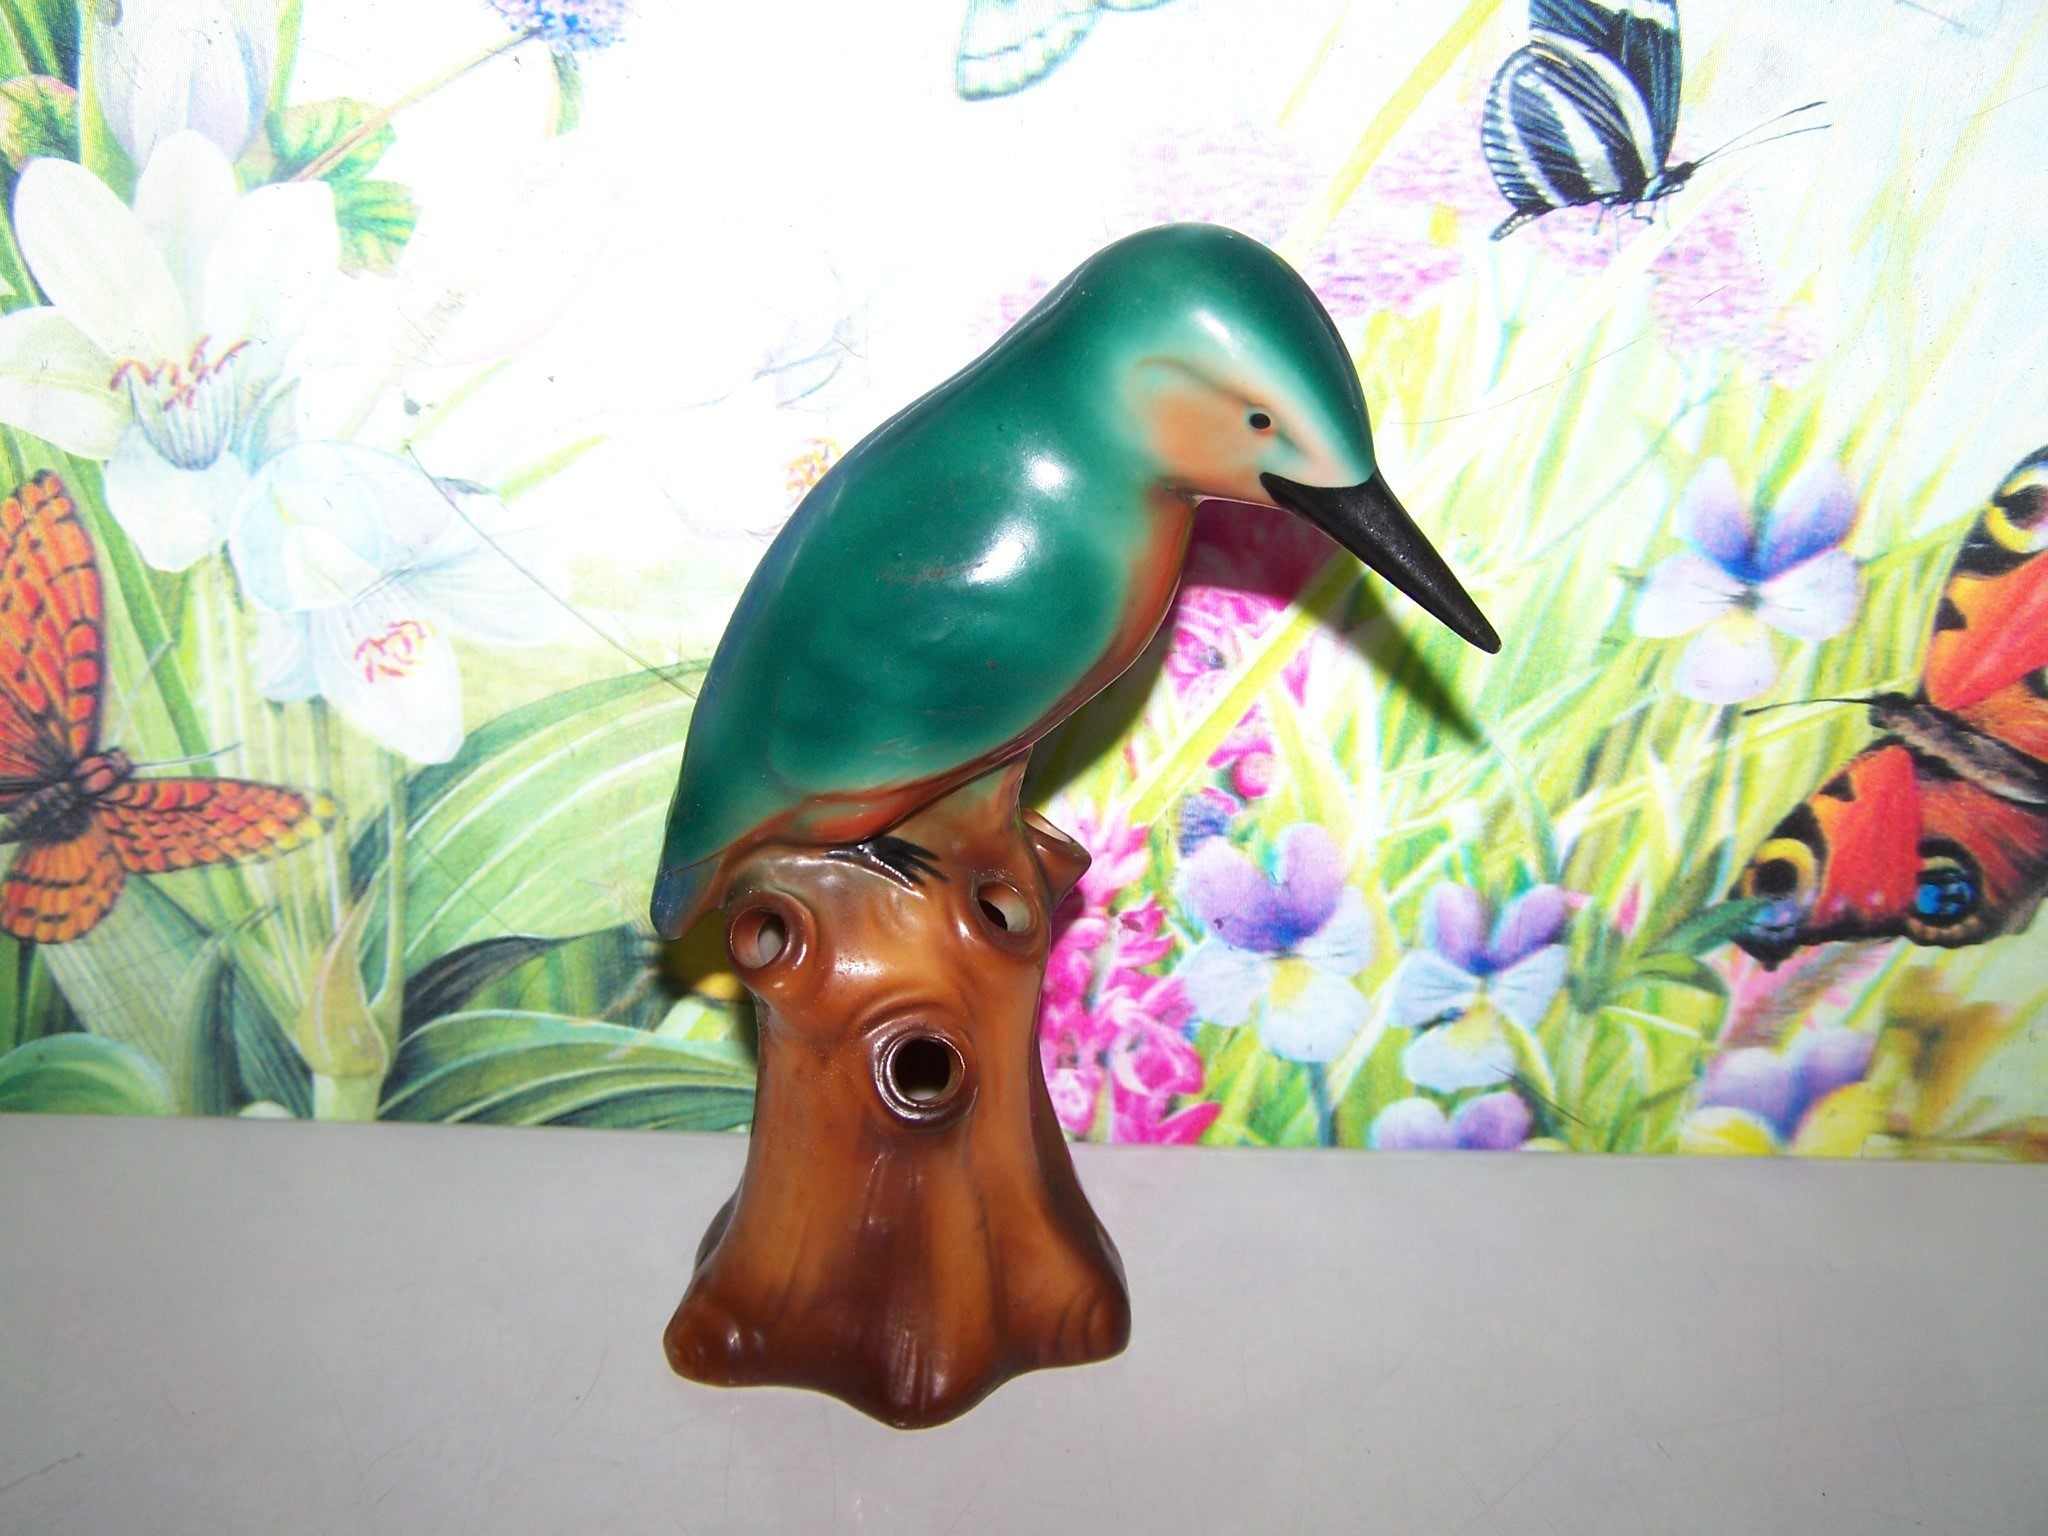 L Furniture Warehouse Victoria Bc Of Hand Painted Kingfisher Bird Flower Frog Impressed 6829